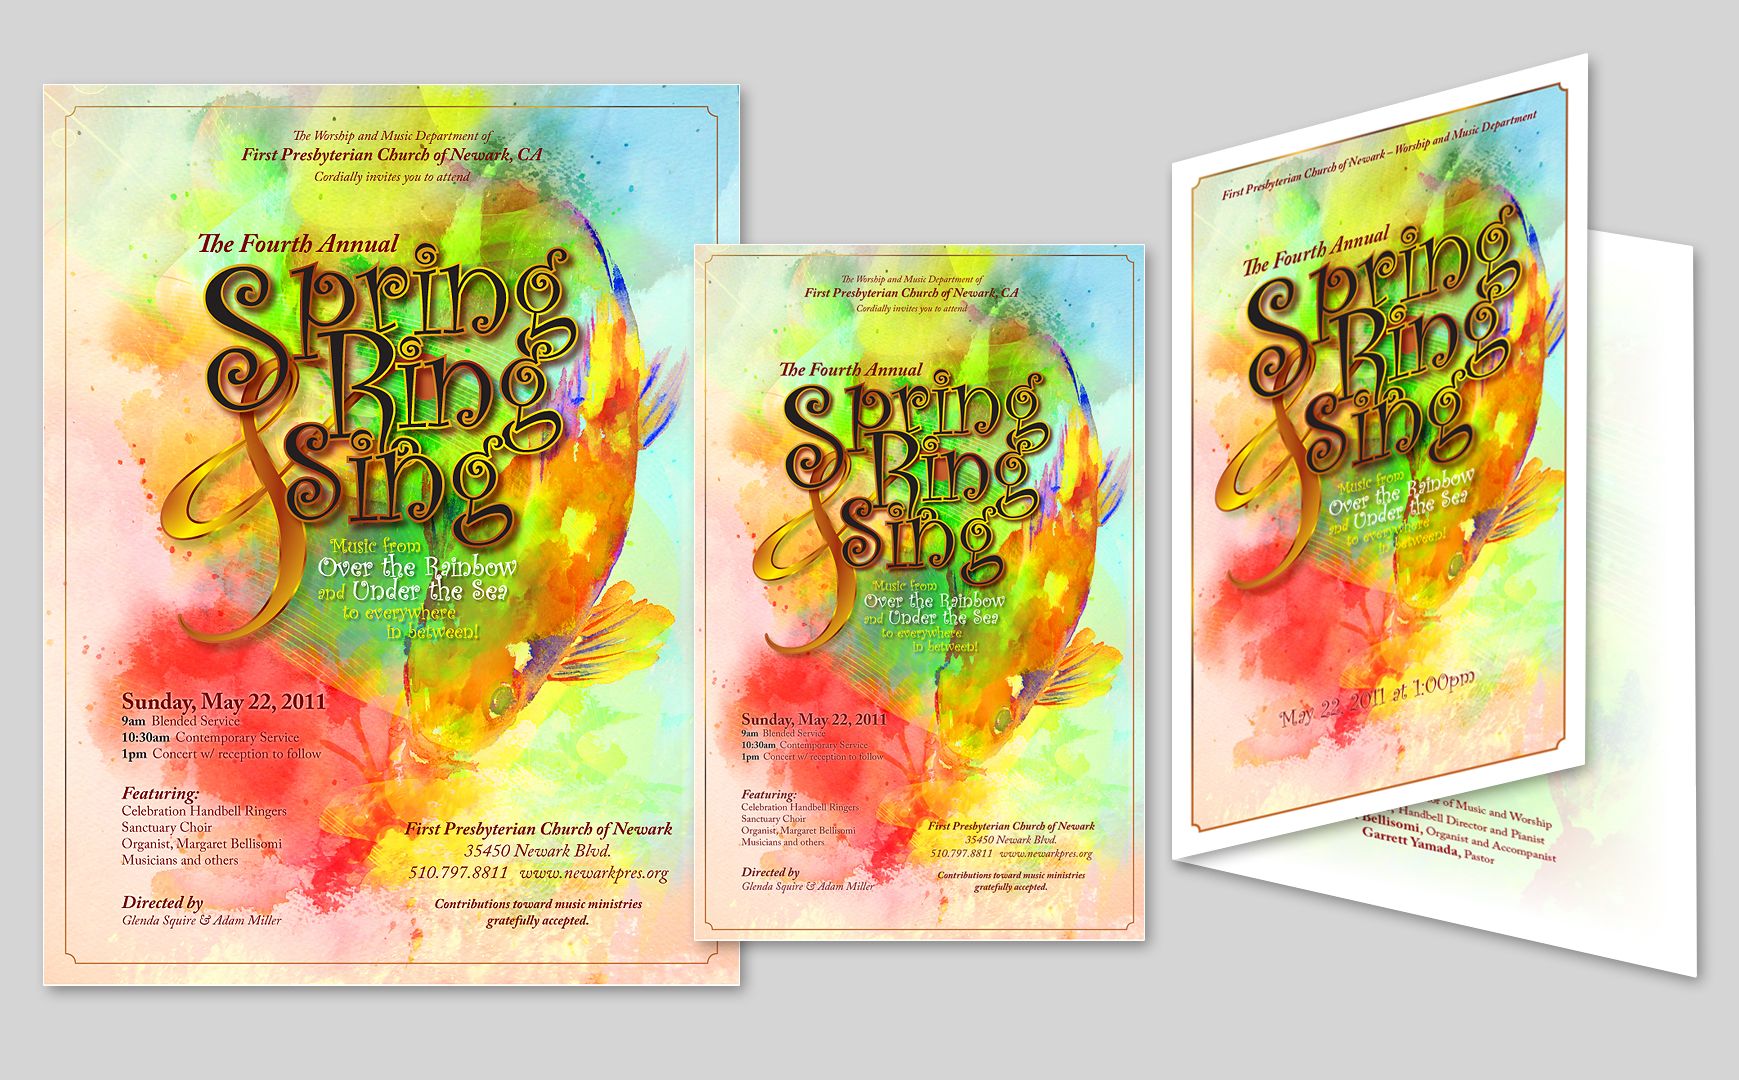 Spring, Ring, & Sing Advertisement